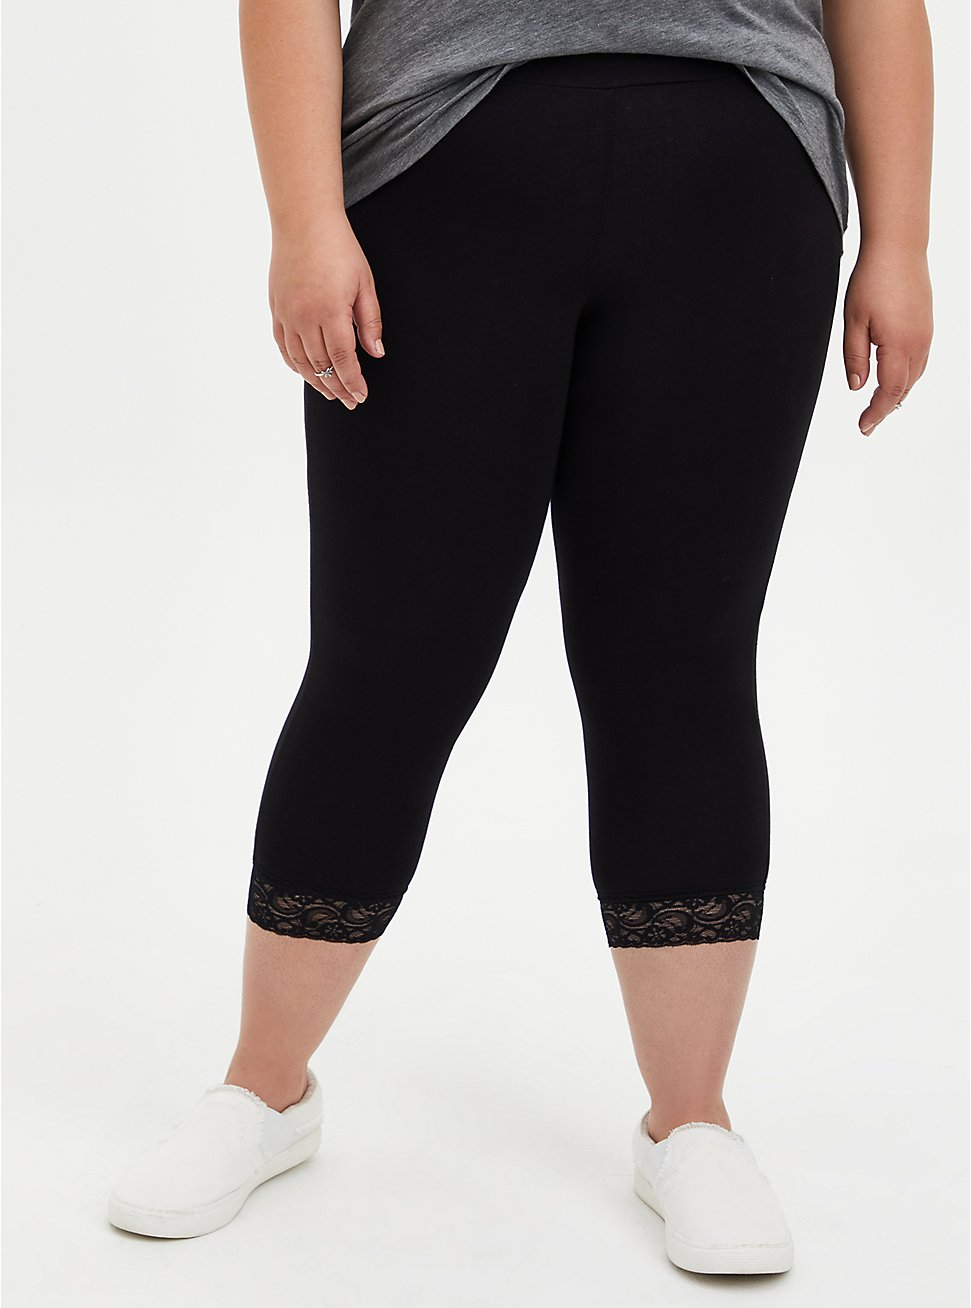 Plus Size Capri Premium Legging - Lace Hem Black, DEEP BLACK, hi-res